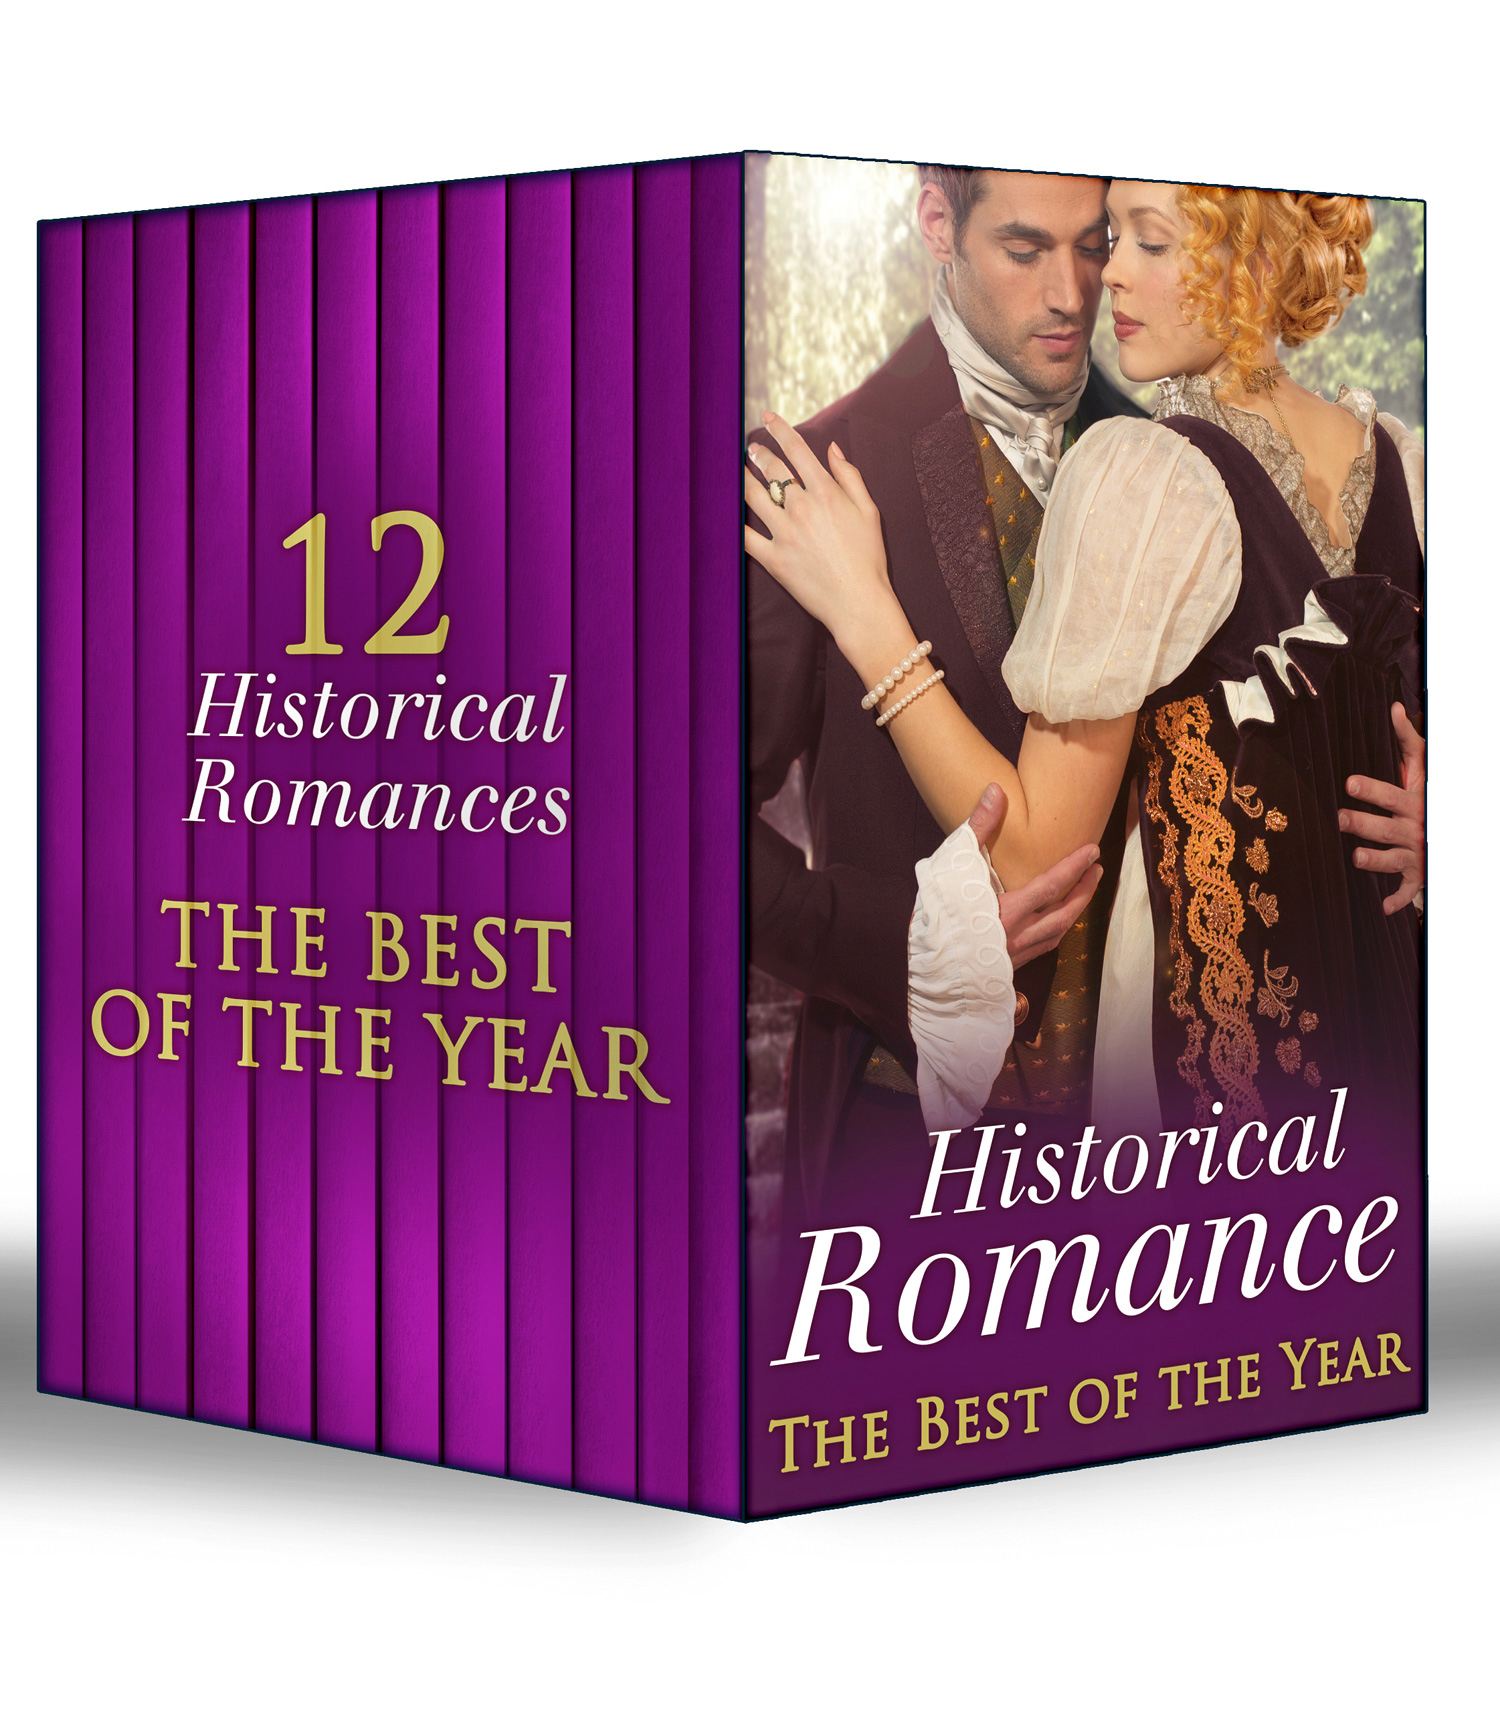 Historical Romance - The Best of the Year